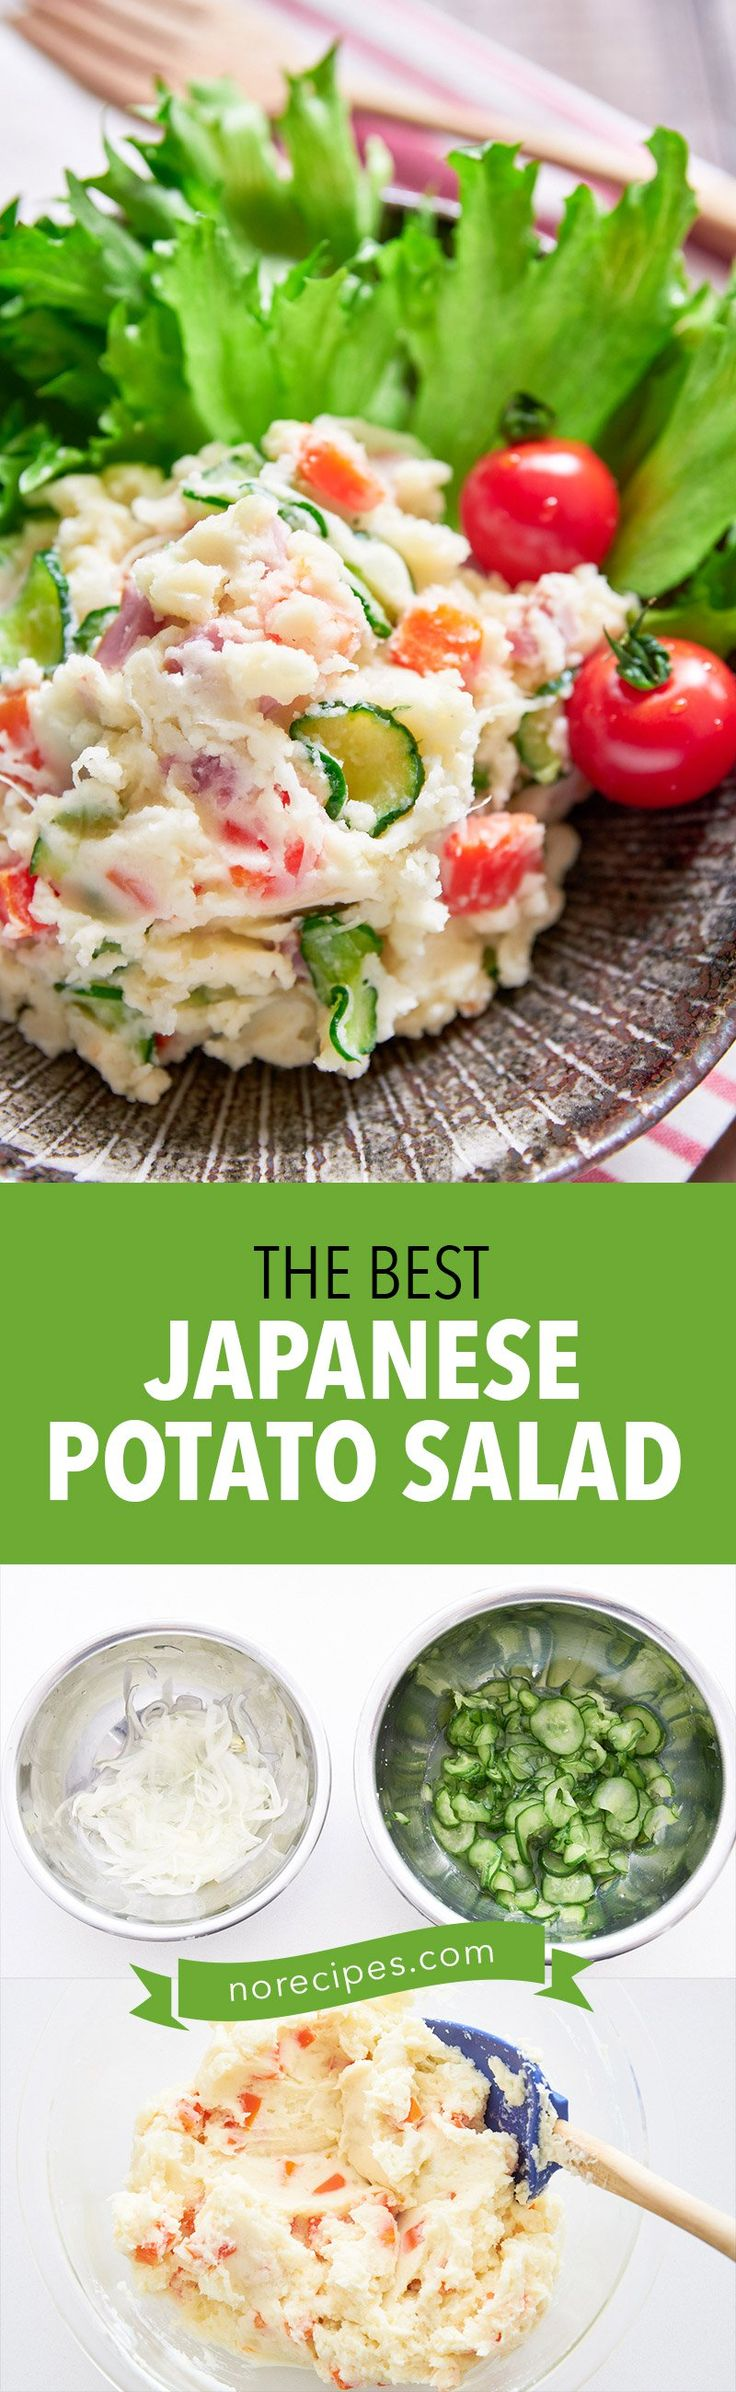 With sweet carrots, crunchy cucumbers, pungent onions and savory ham, this easy Japanese-style potato salad is colorful and delicious! #picnic #bento #potatosalad